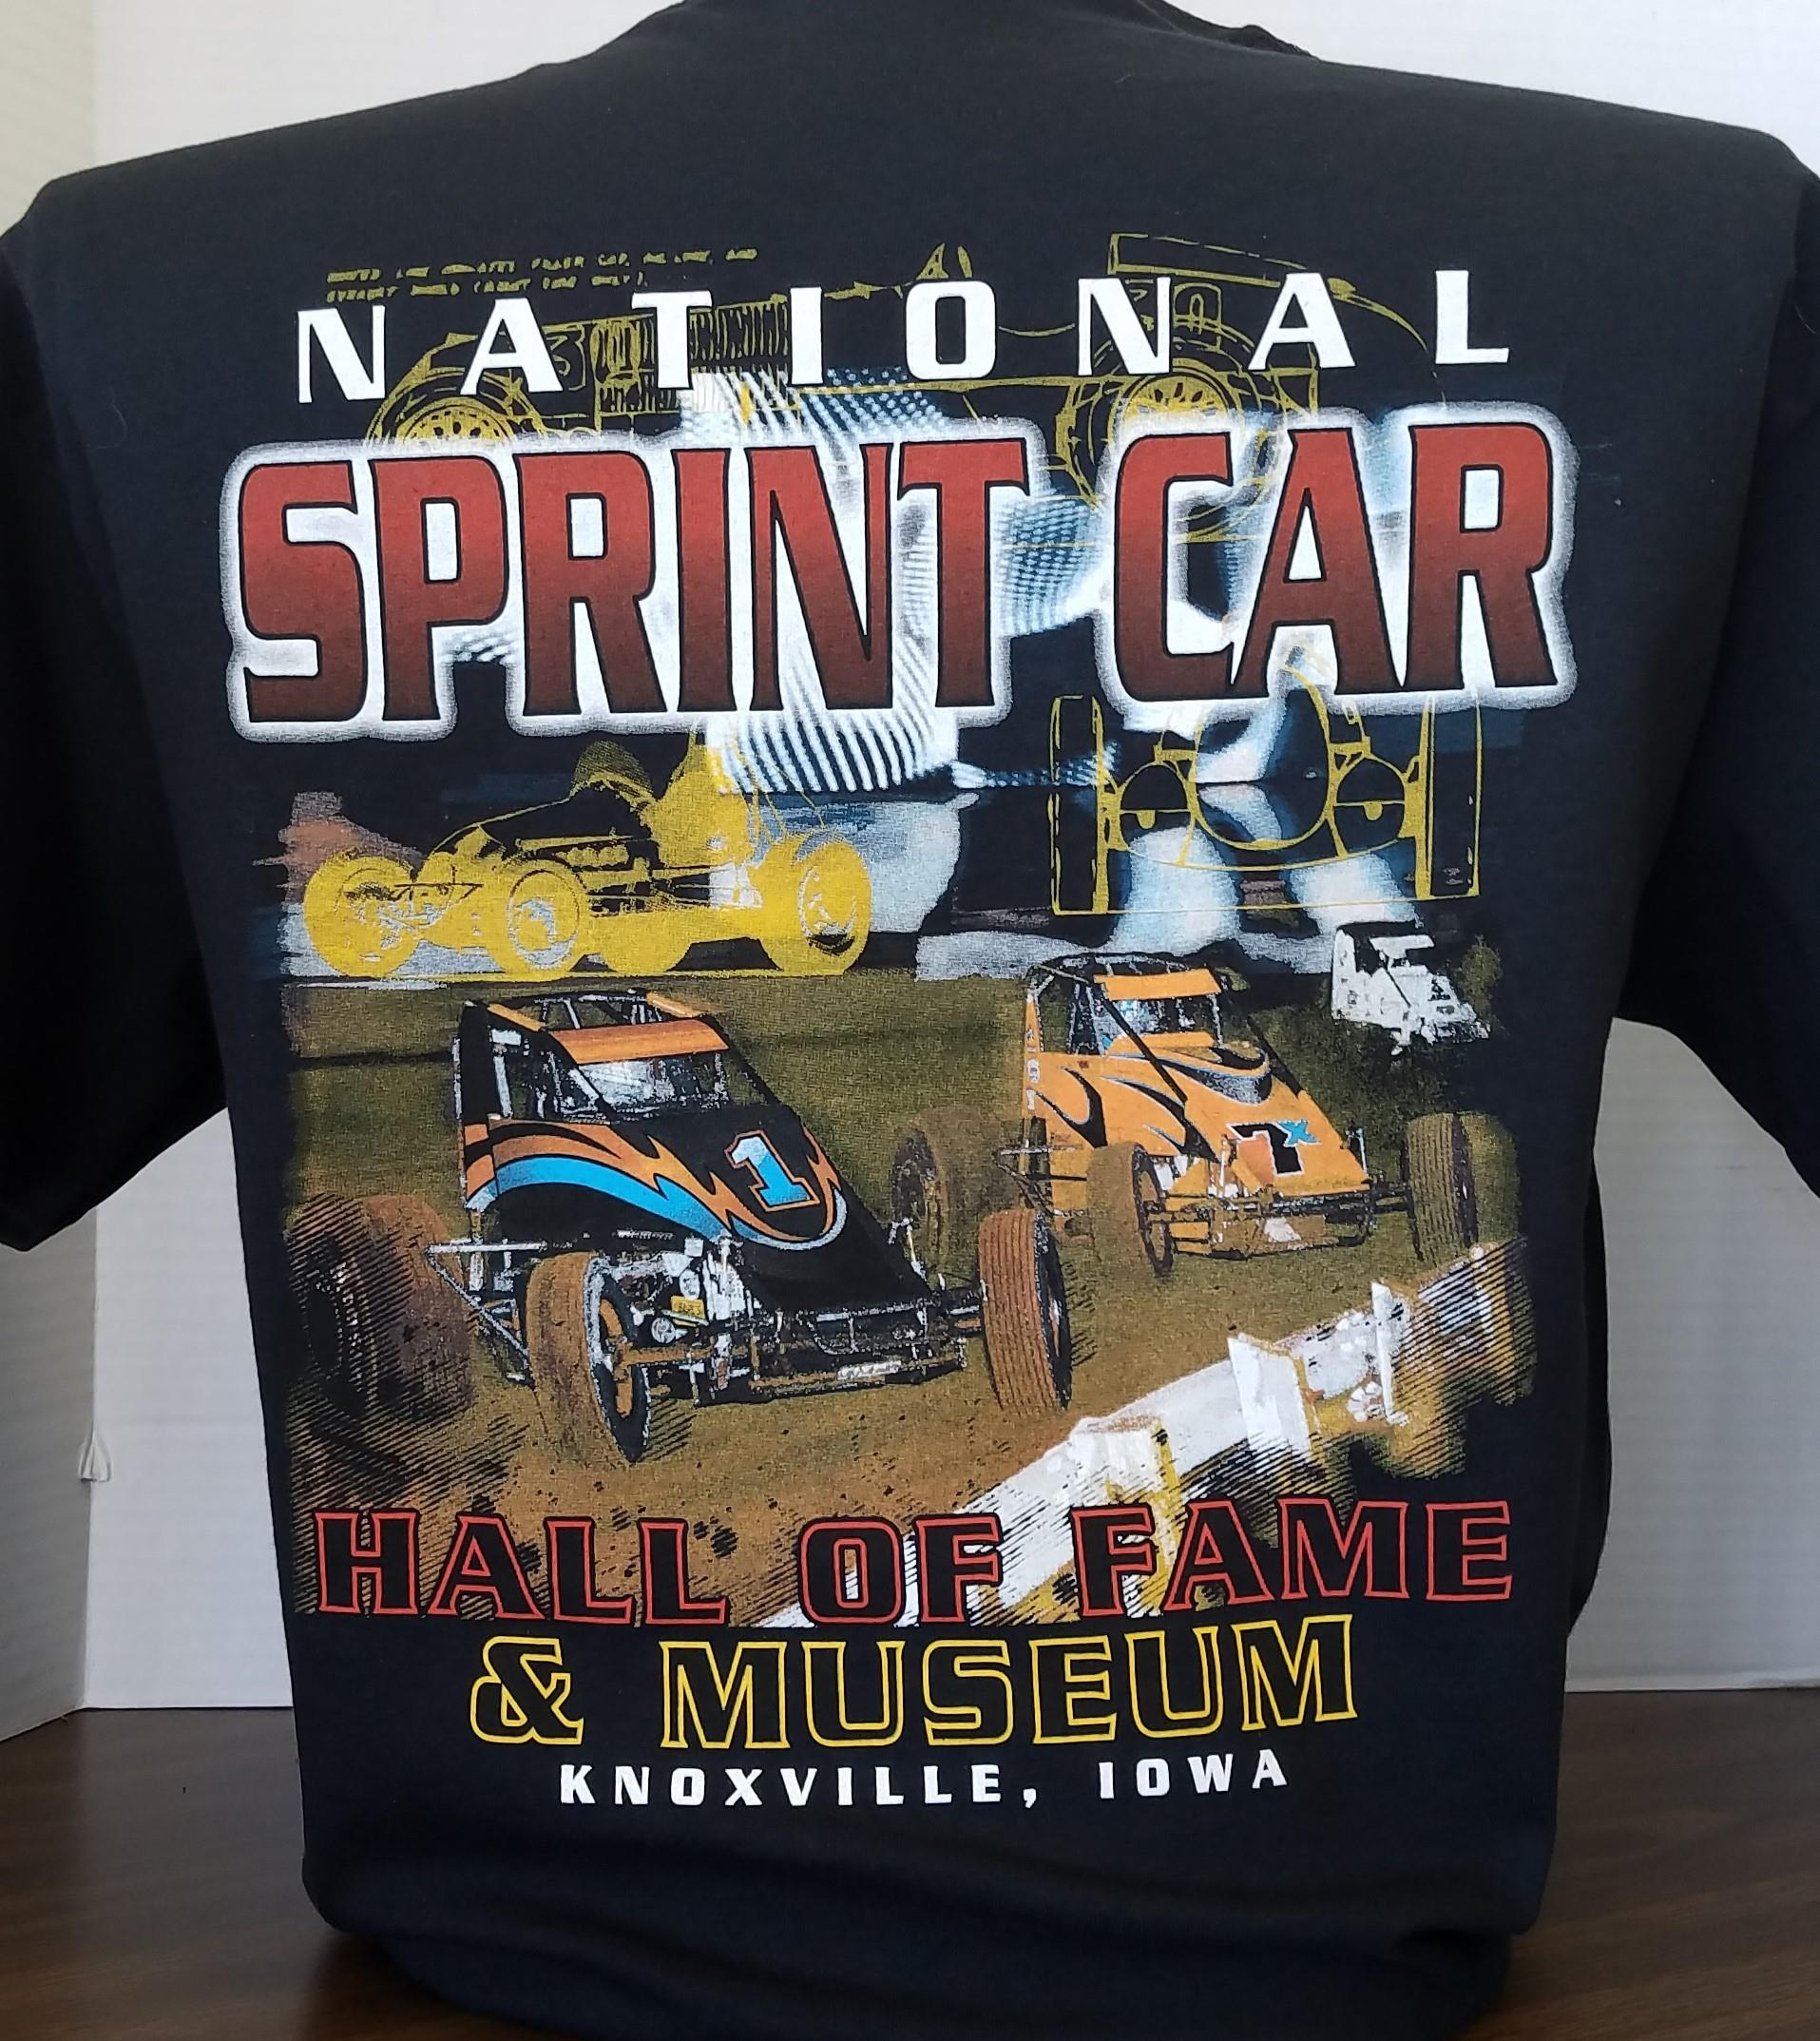 Non-Winged Sprint Car T-Shirt